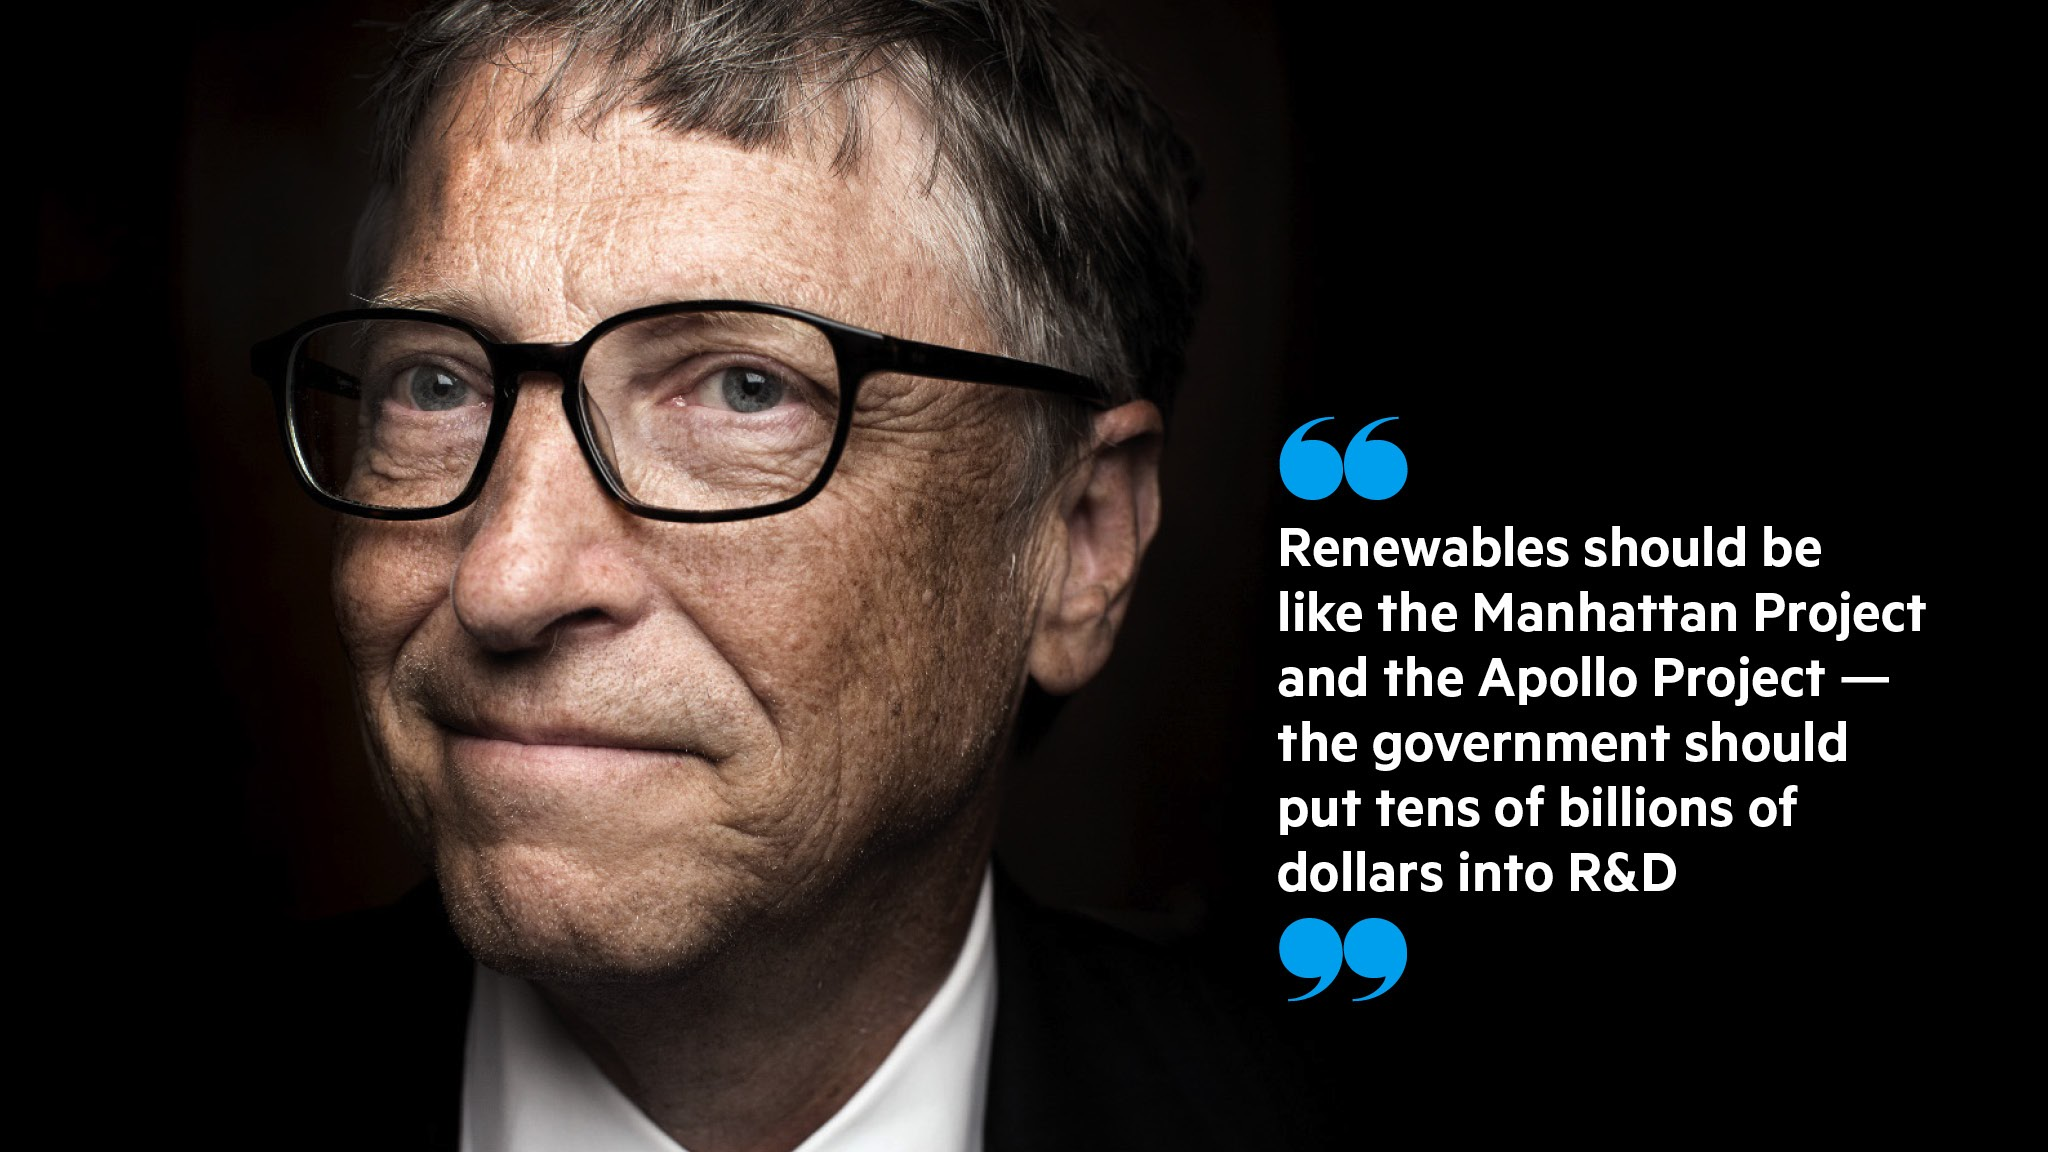 Gates To Double Investment In Renewable Energy Projects